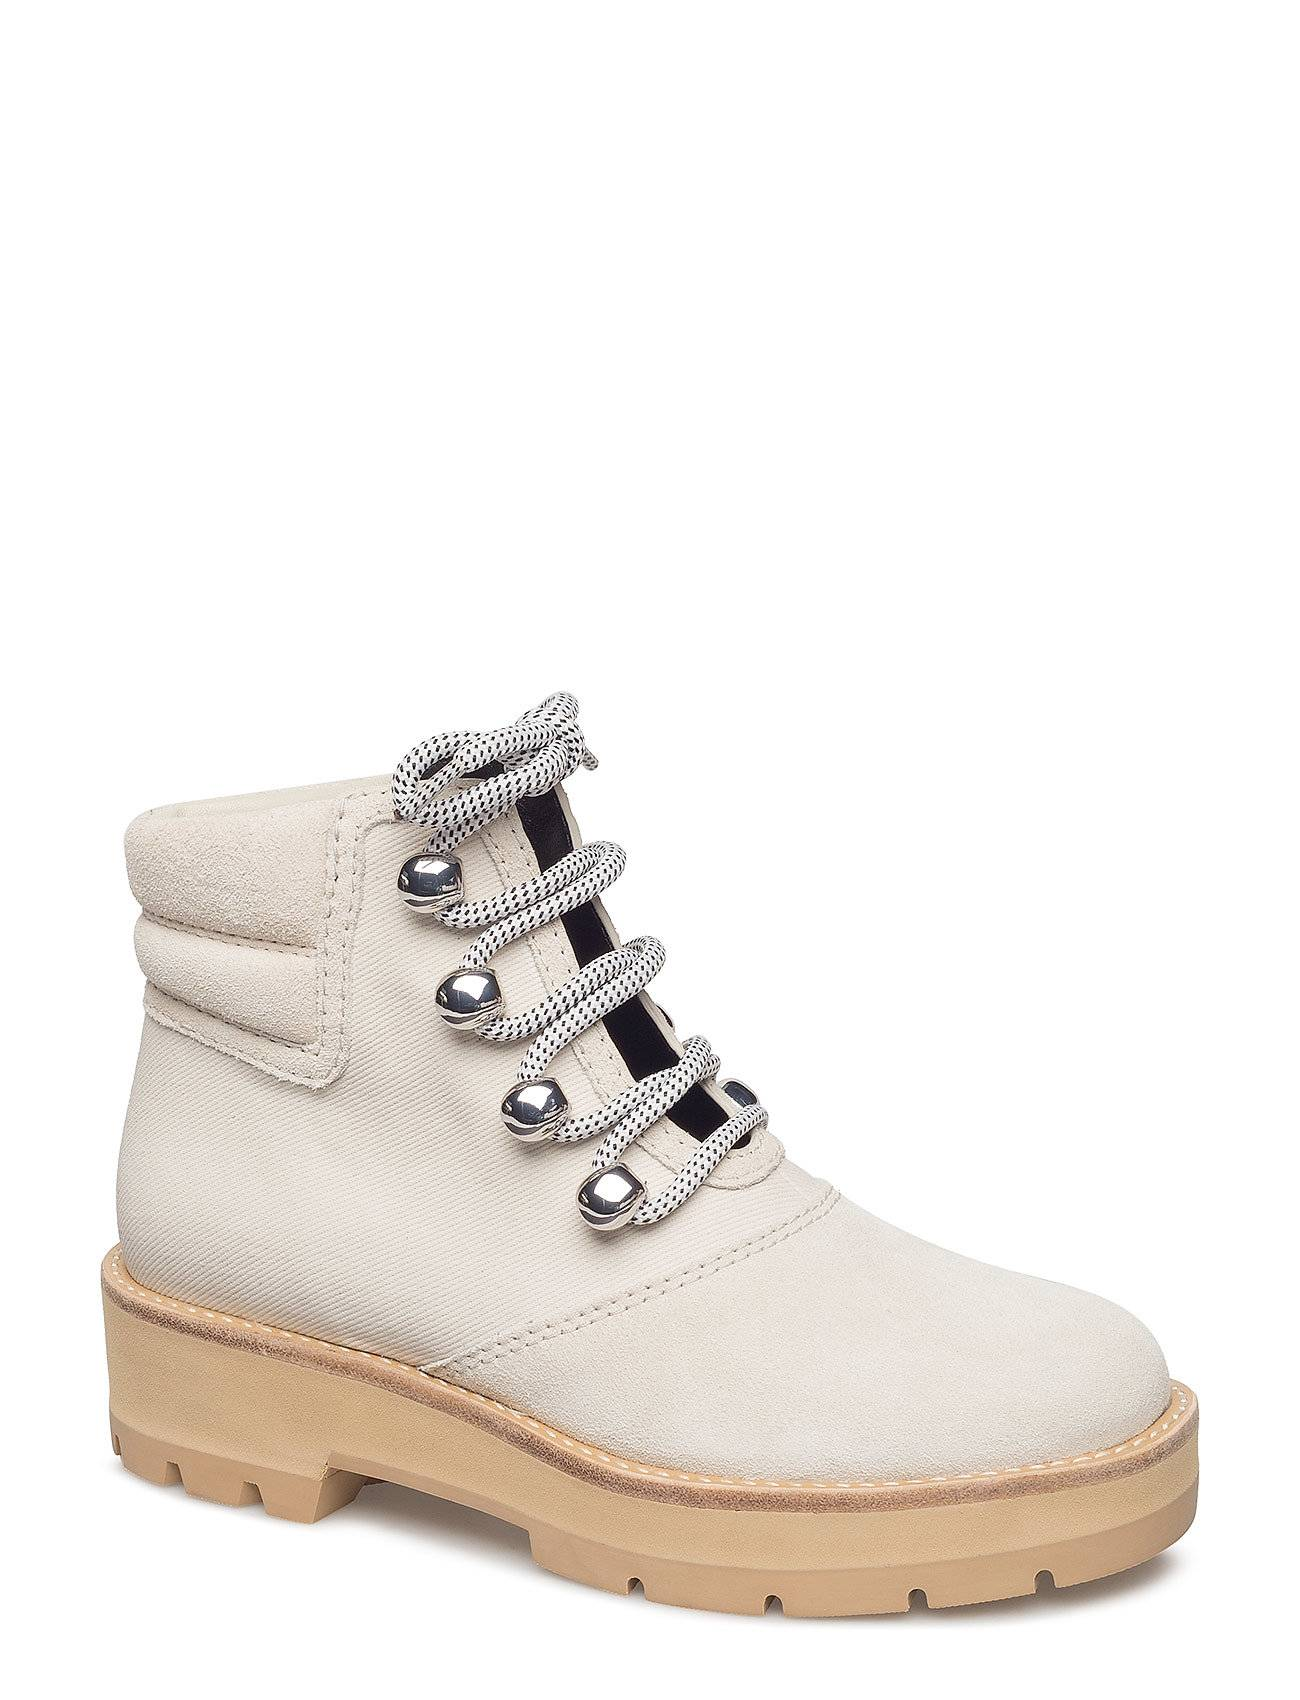 3.1 Phillip Lim Dylan - Lace Up Hiking Boot